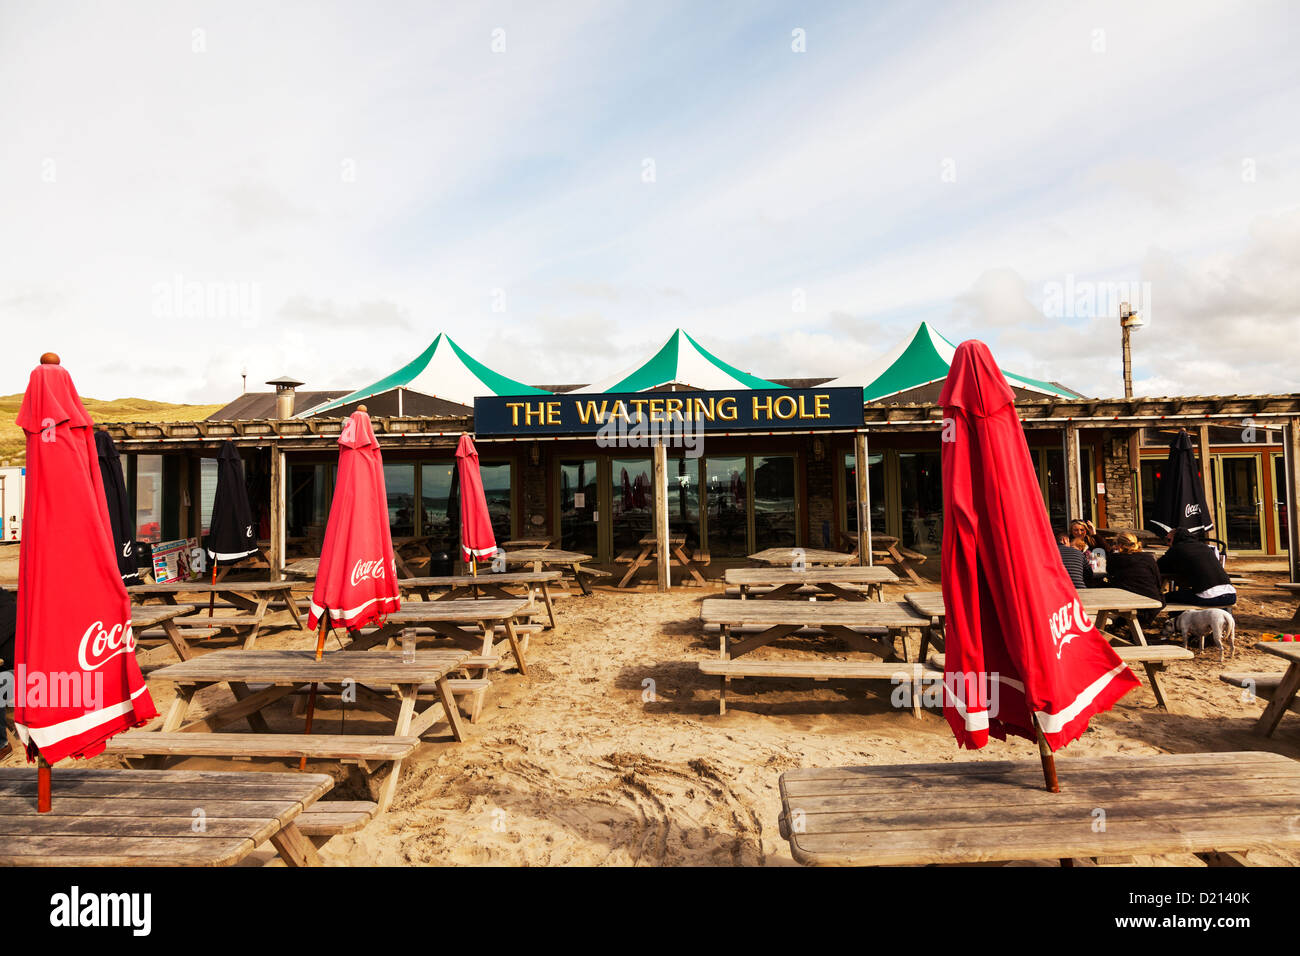 Perranporth Perrenporth, The Watering Hole Bar, Cornwall, UK, England outside tables and umbrellas exterior of building - Stock Image